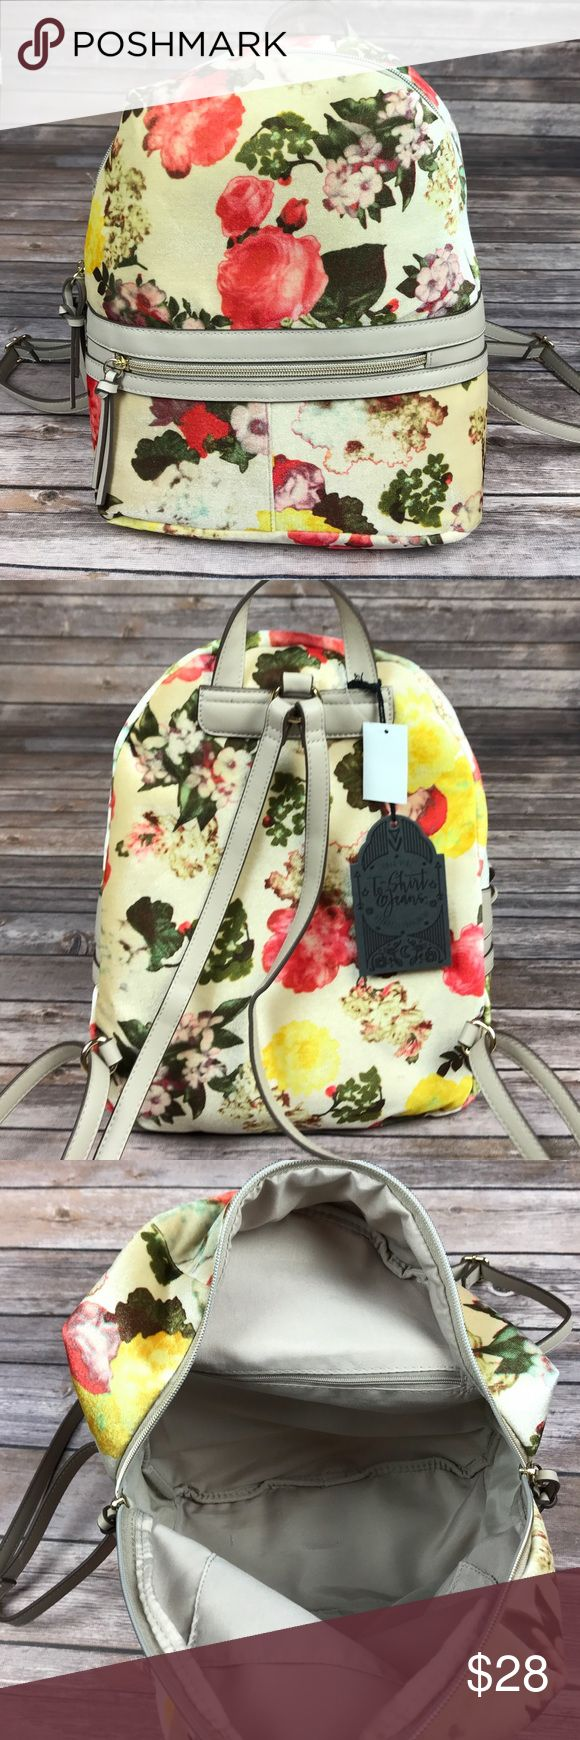 T-Shirt and Jeans Floral Cream Backpack -Brand New With Tags -Cute Foral Pattern -Great for Fall! -Don't Like The Price? Send Me An Offer! Tshirt and Jeans Bags Backpacks